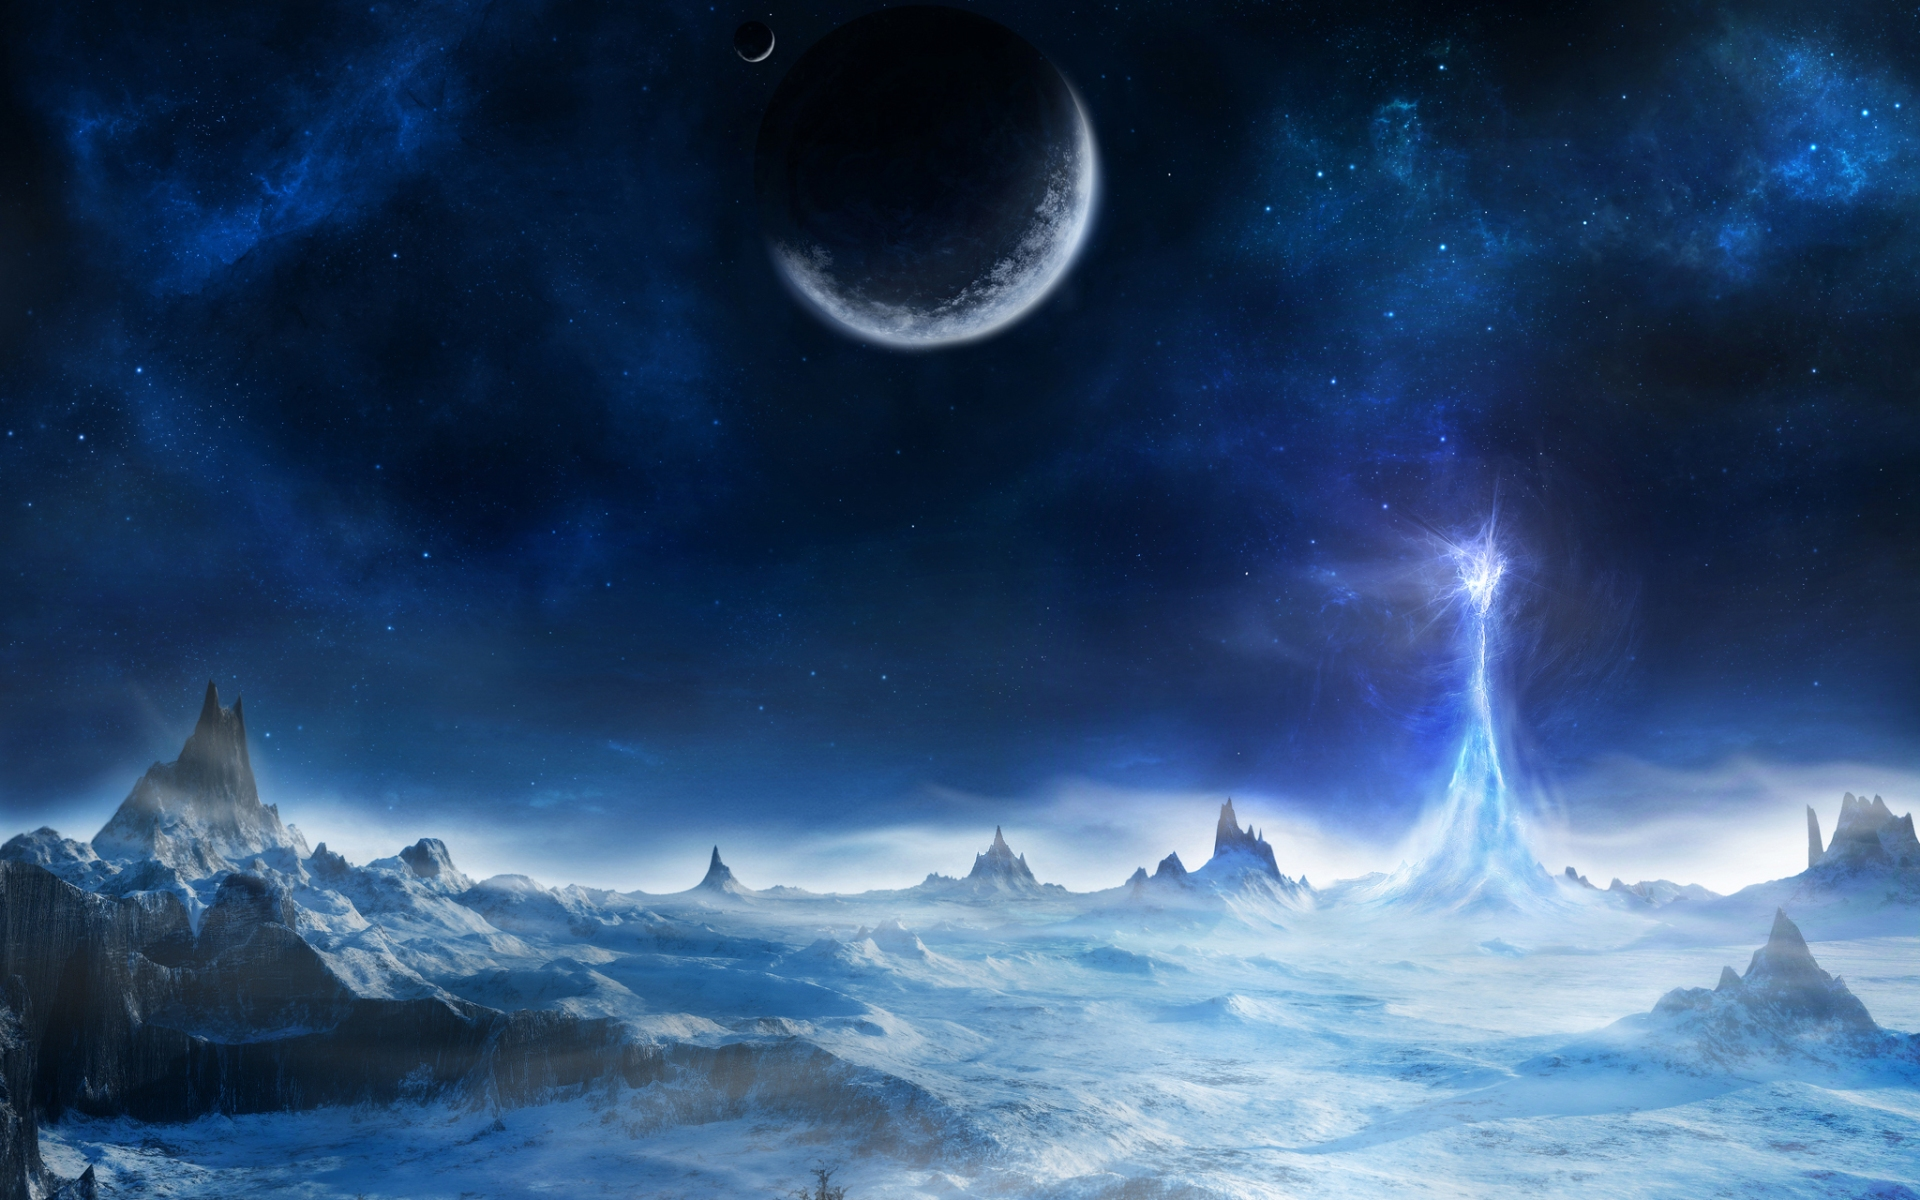 Outer Space Wallpaper 1920x1200 Outer, Space, Planets, Artwork ...